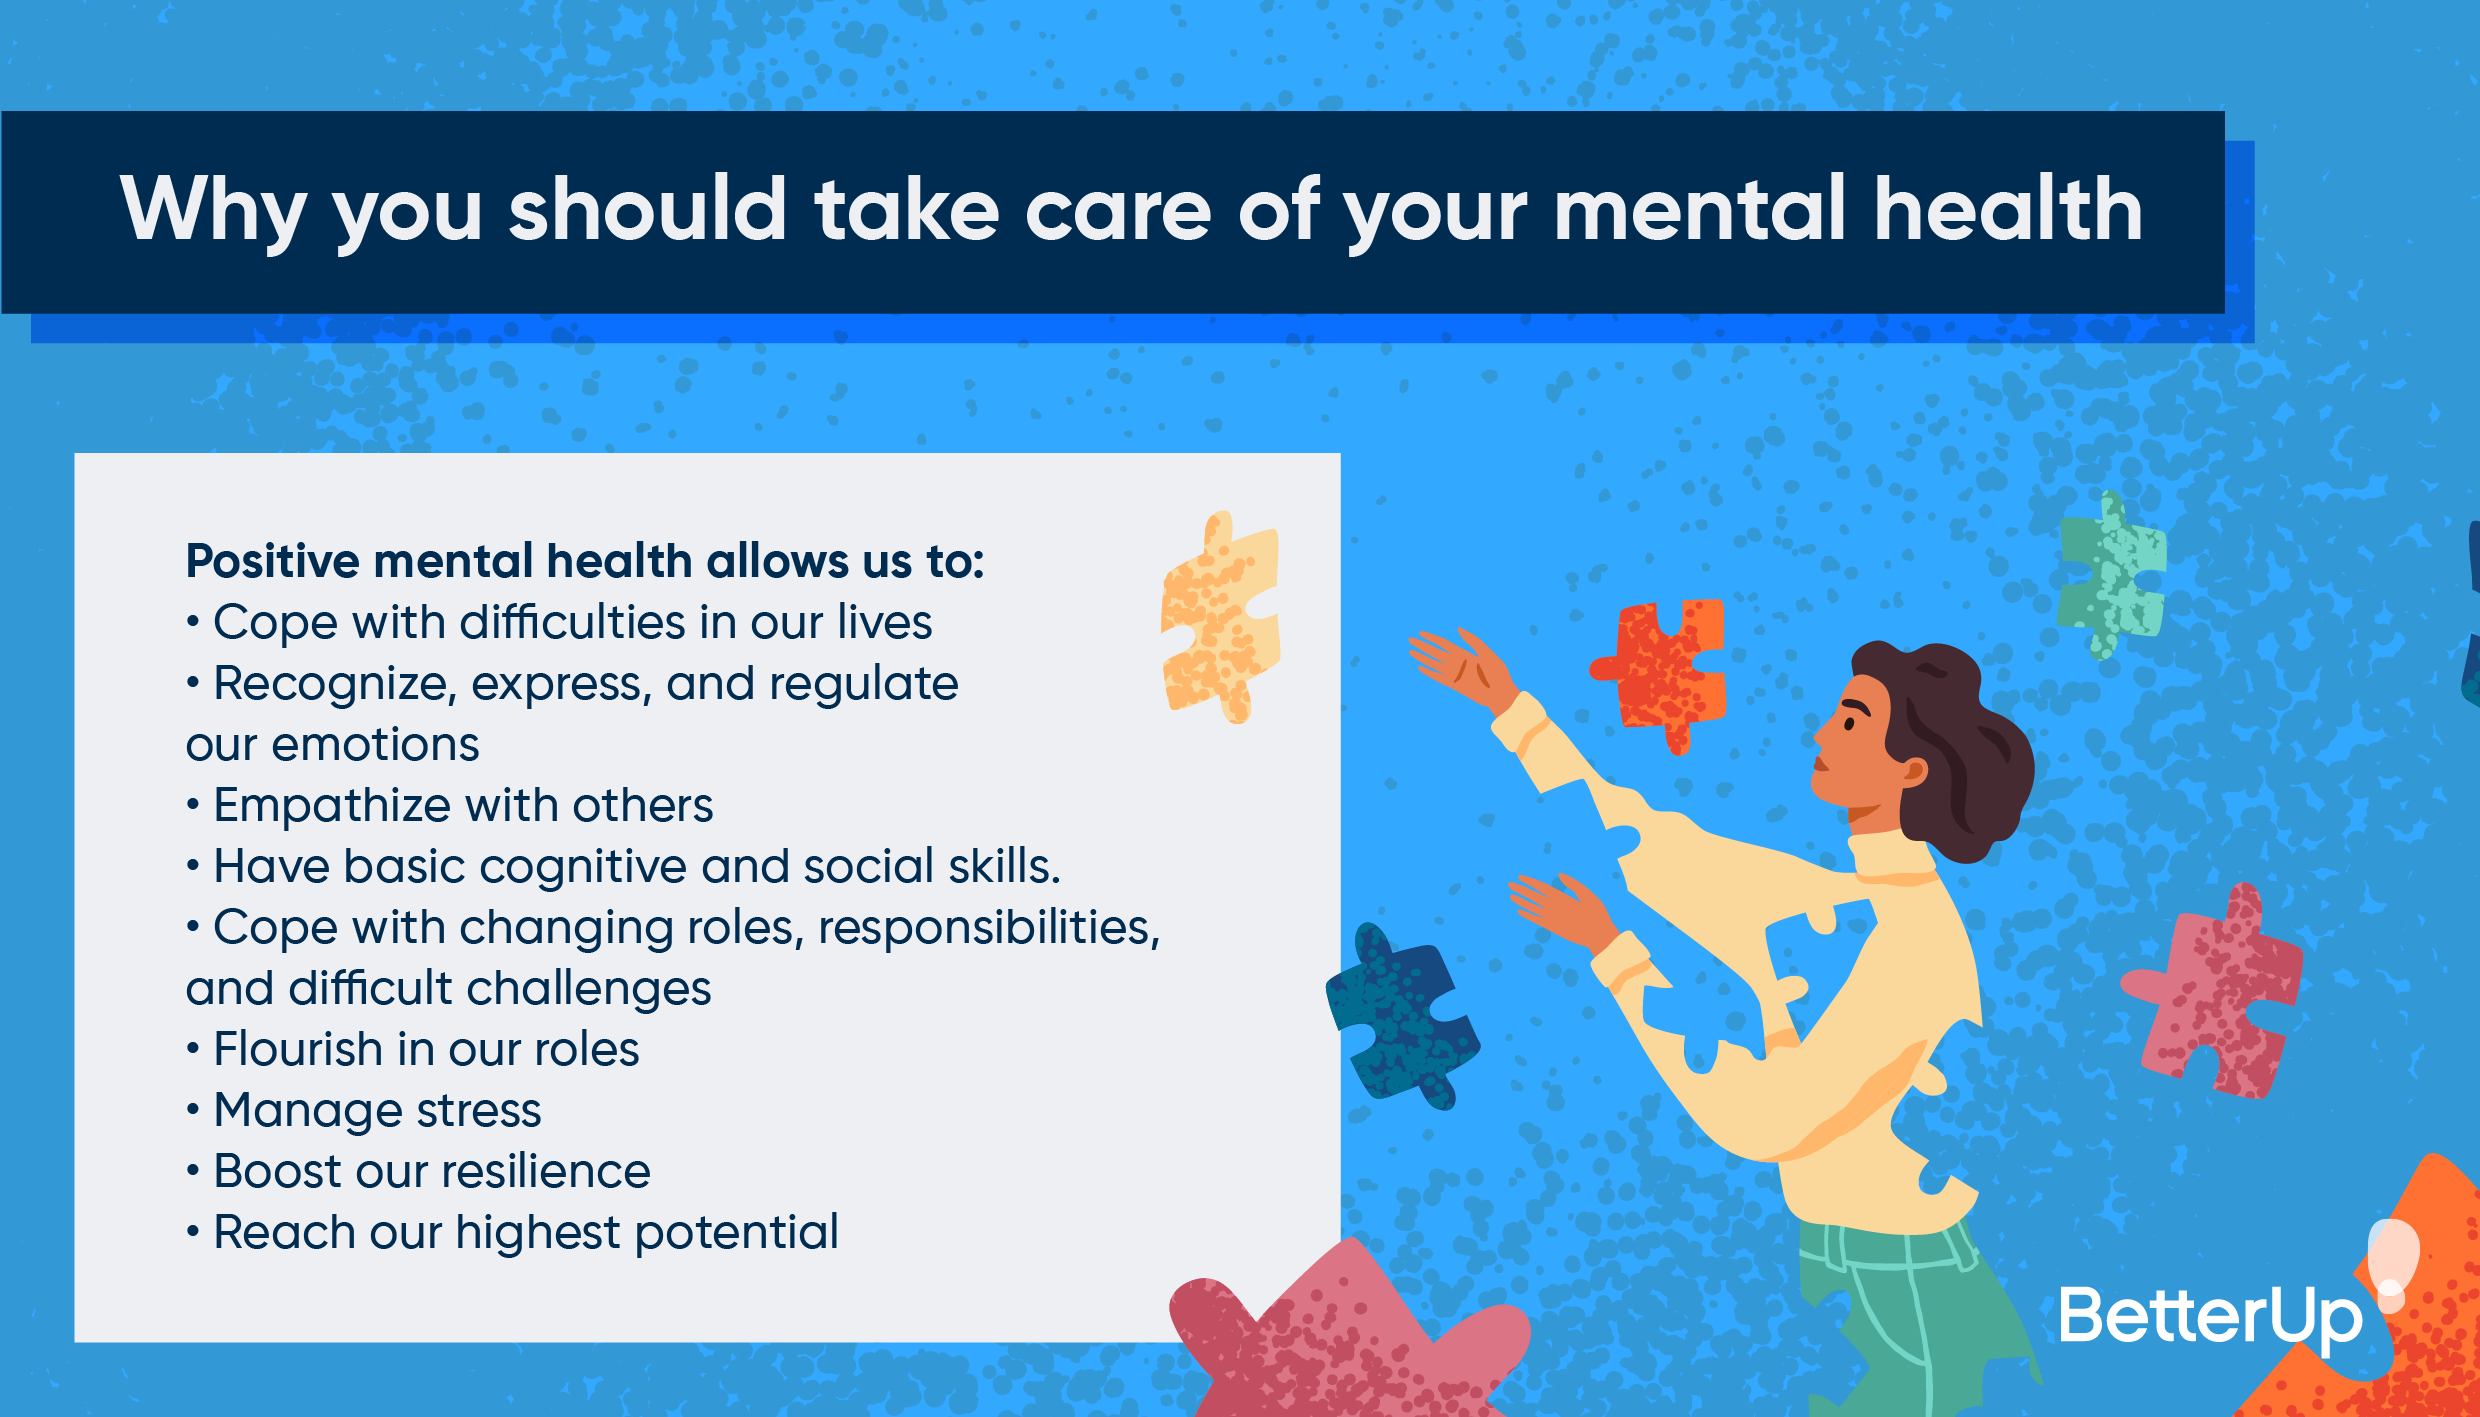 reasons to take care of your mental health